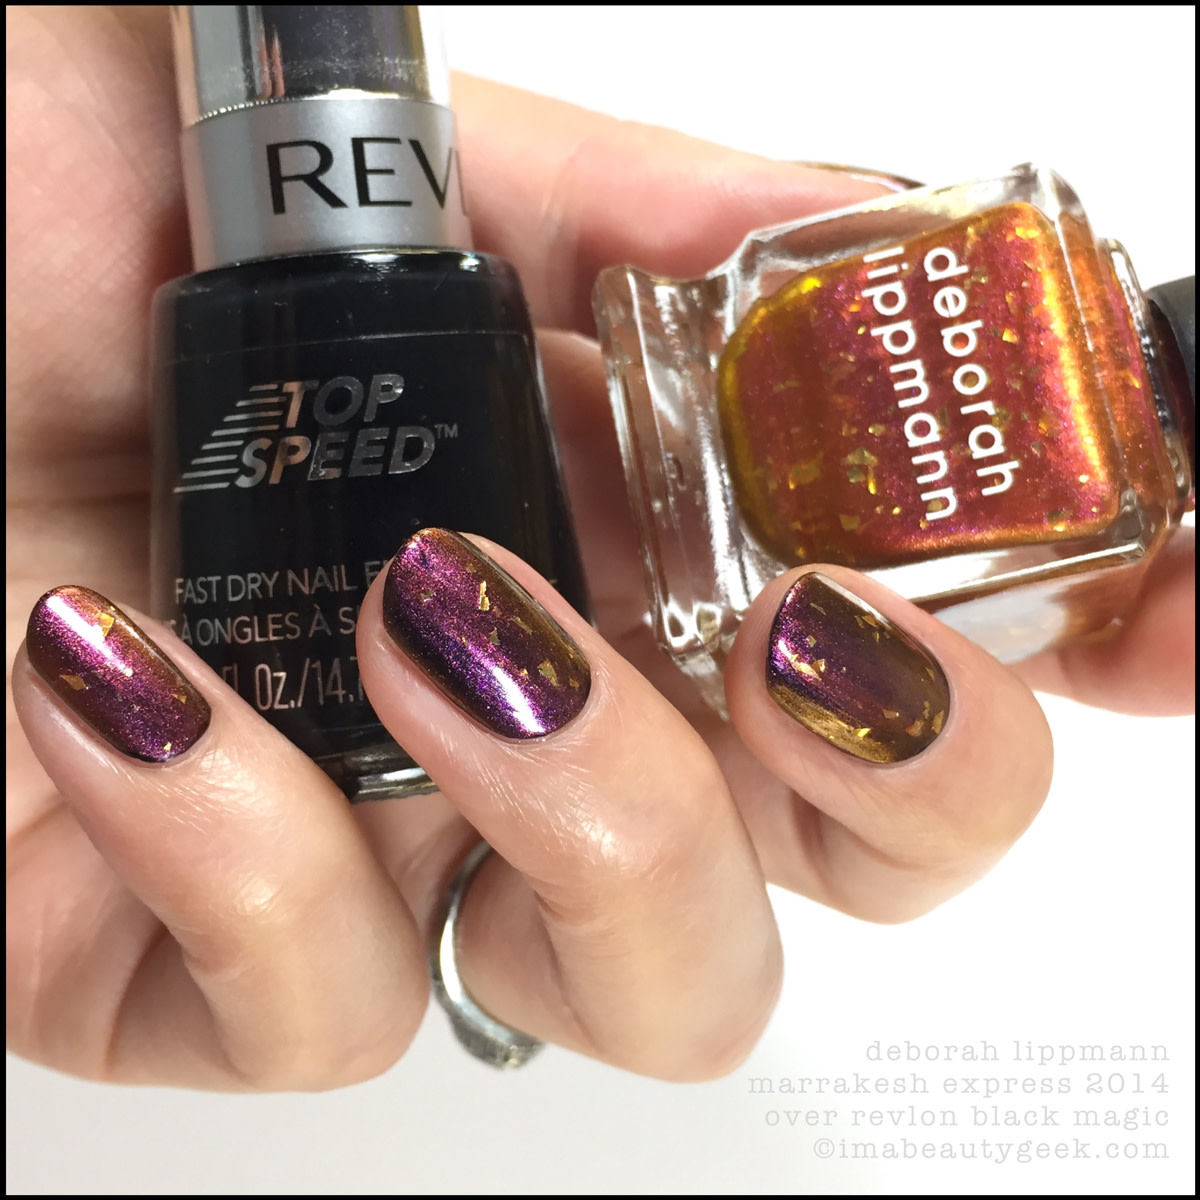 Deborah Lippmann Marrakesh Express Holiday 2014 over black